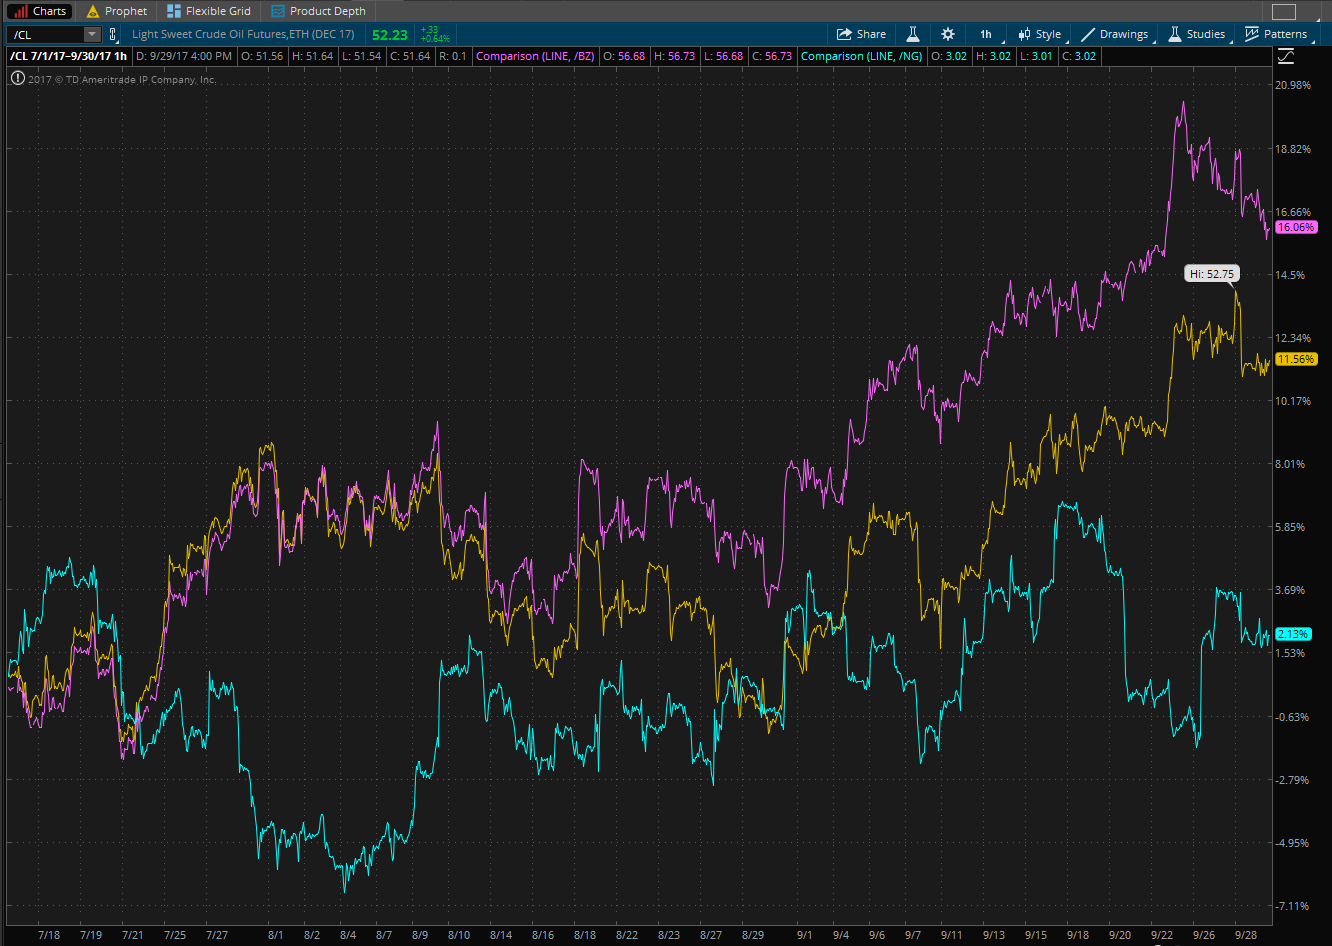 Chart showing WTI Crude Futures, Brent Crude Futures and Natural Gas Futures